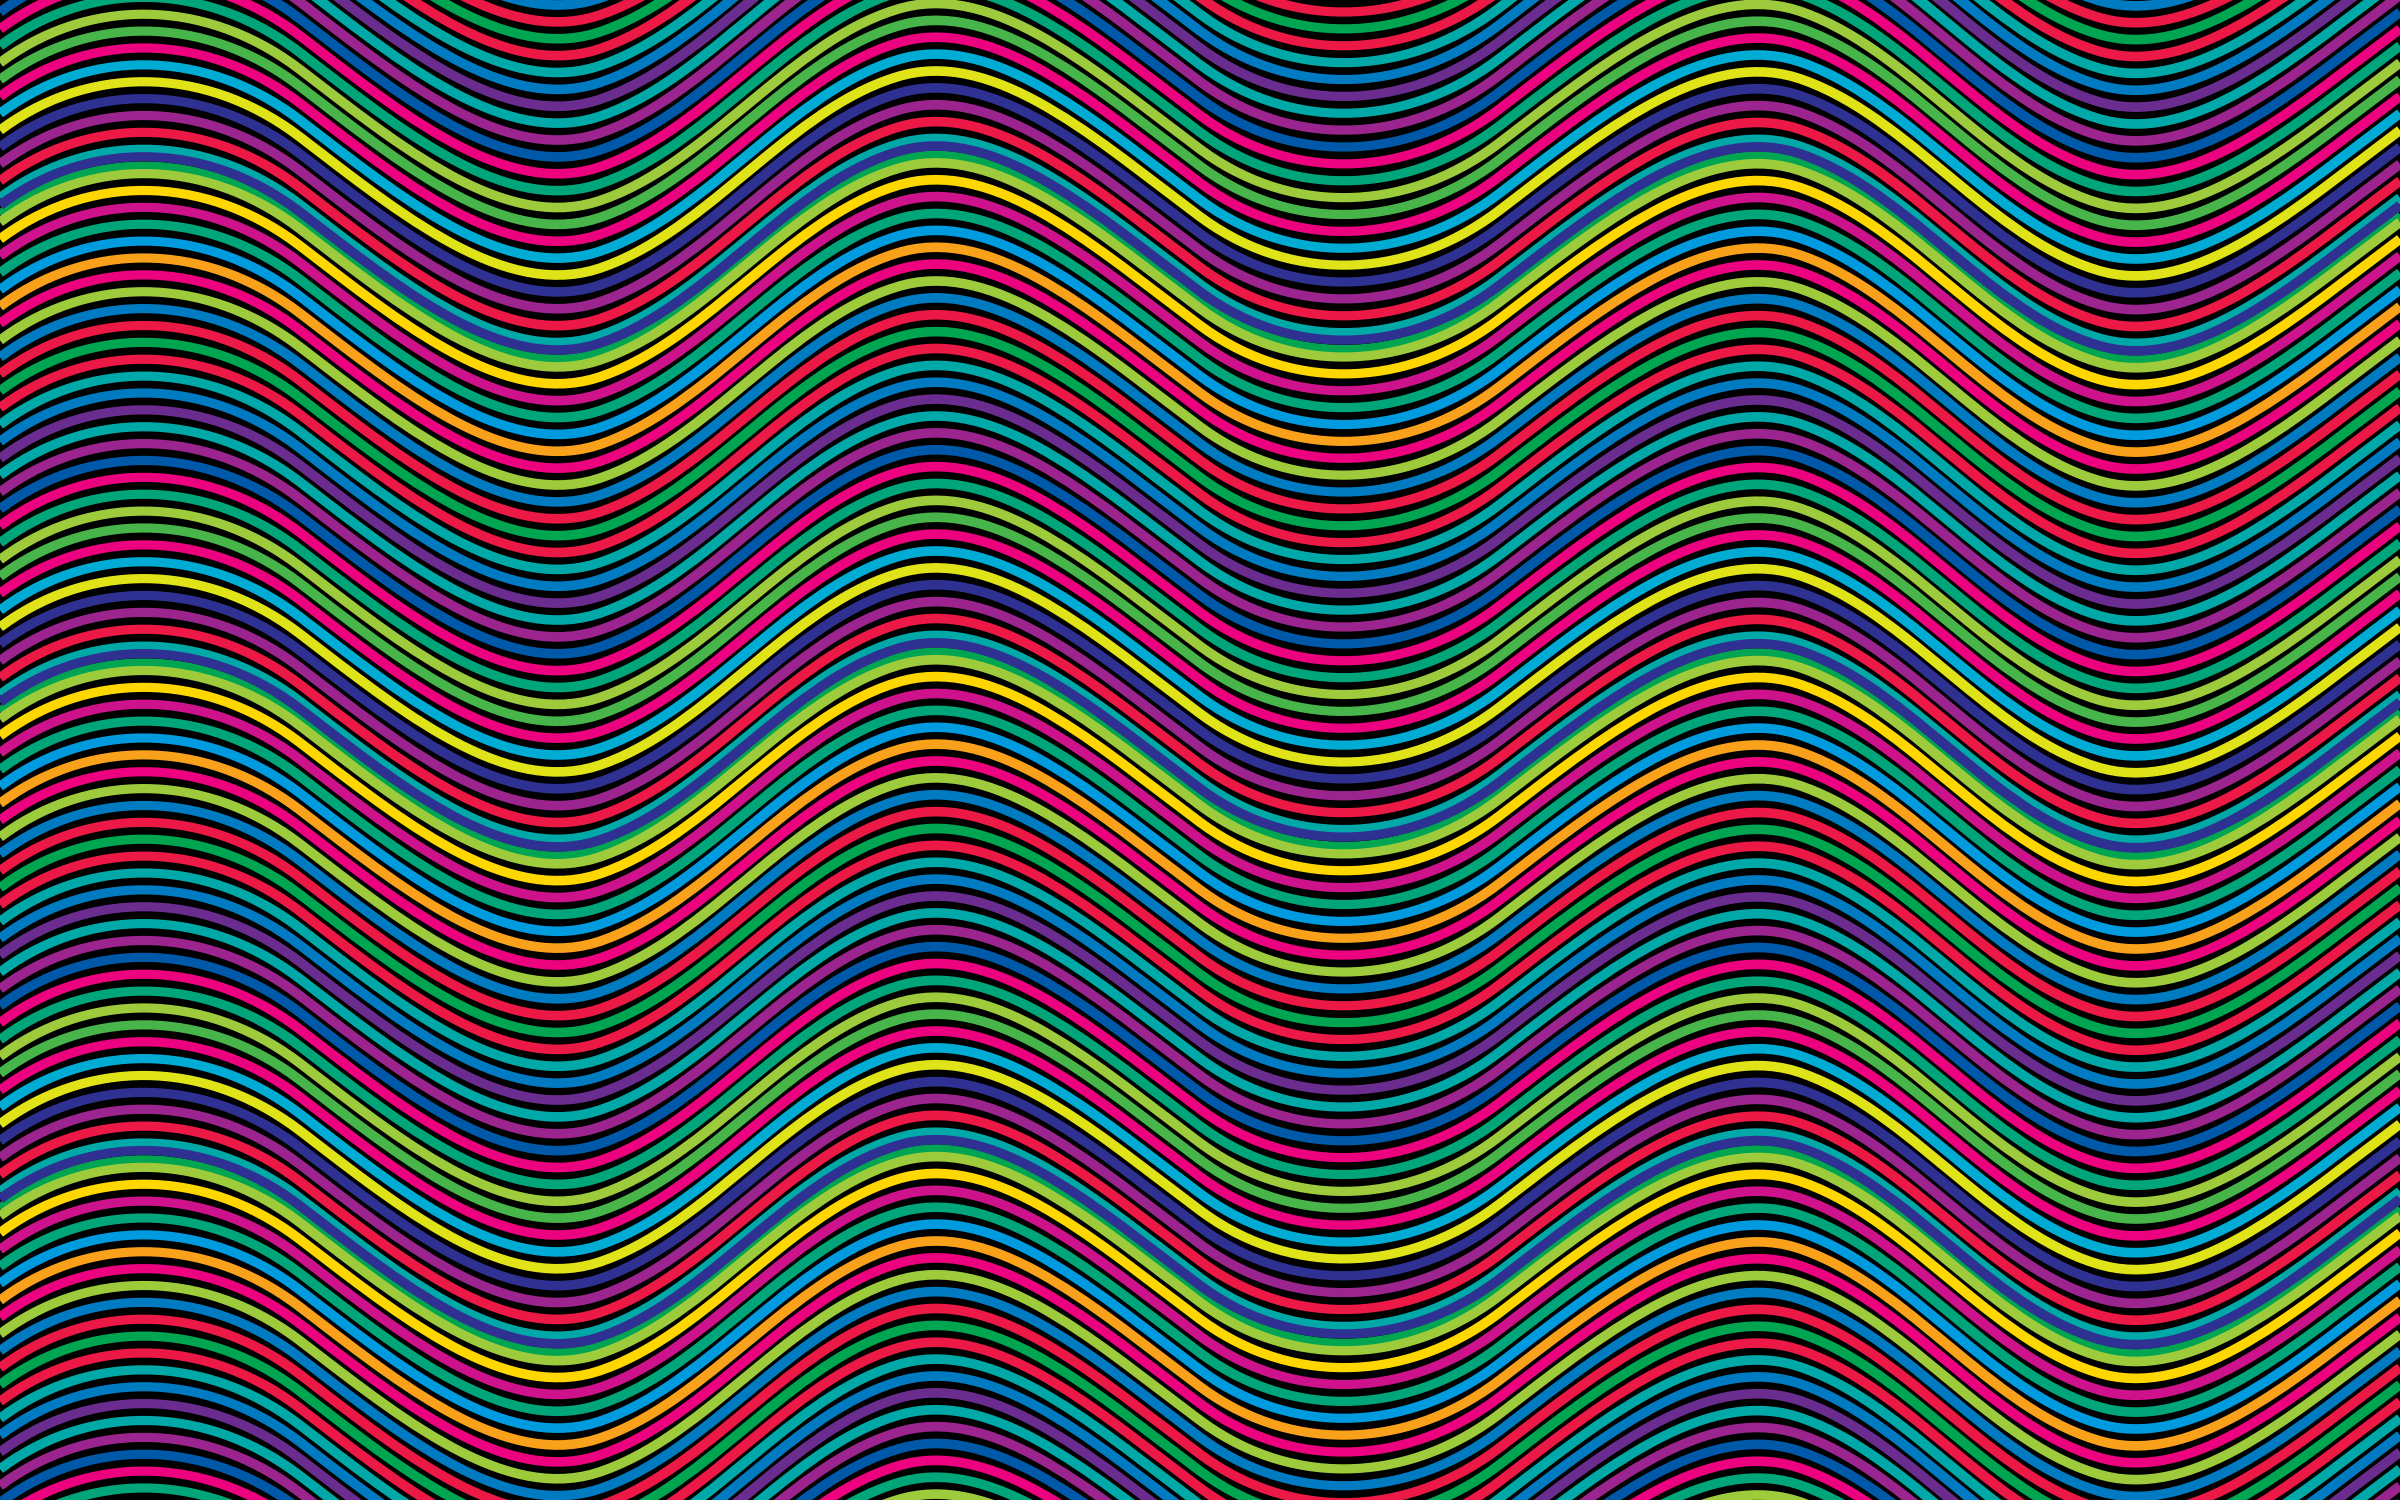 Prismatic Waves Background by GDJ